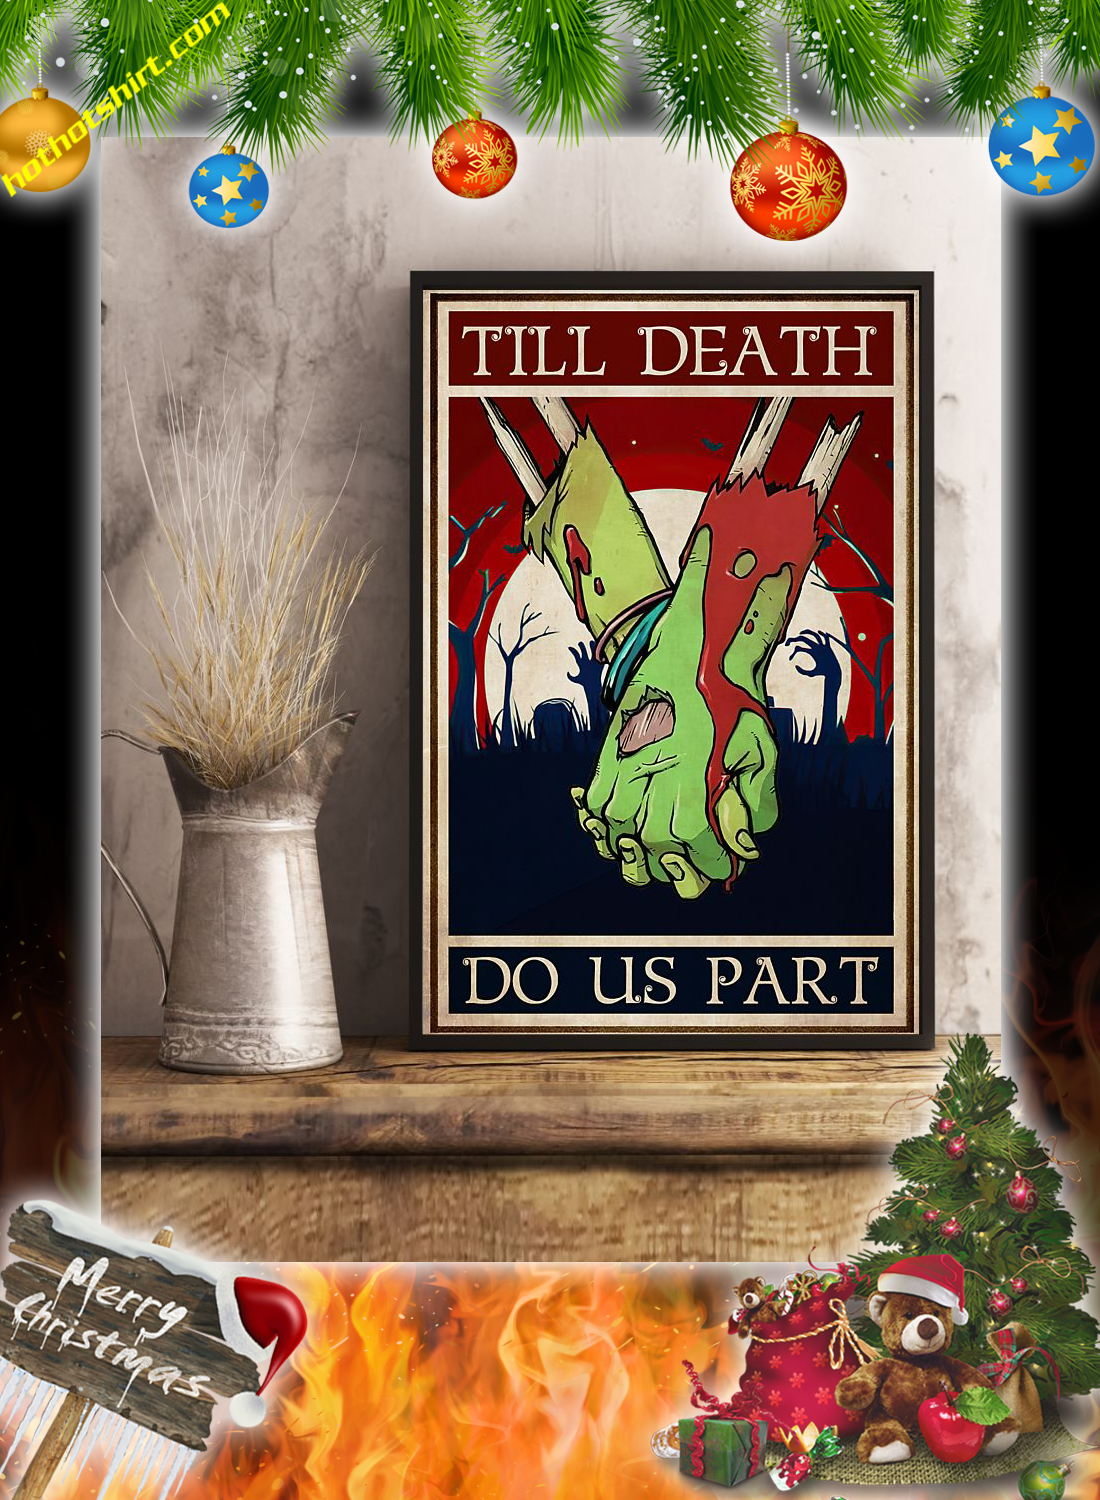 Zoombie till death do us part poster 3